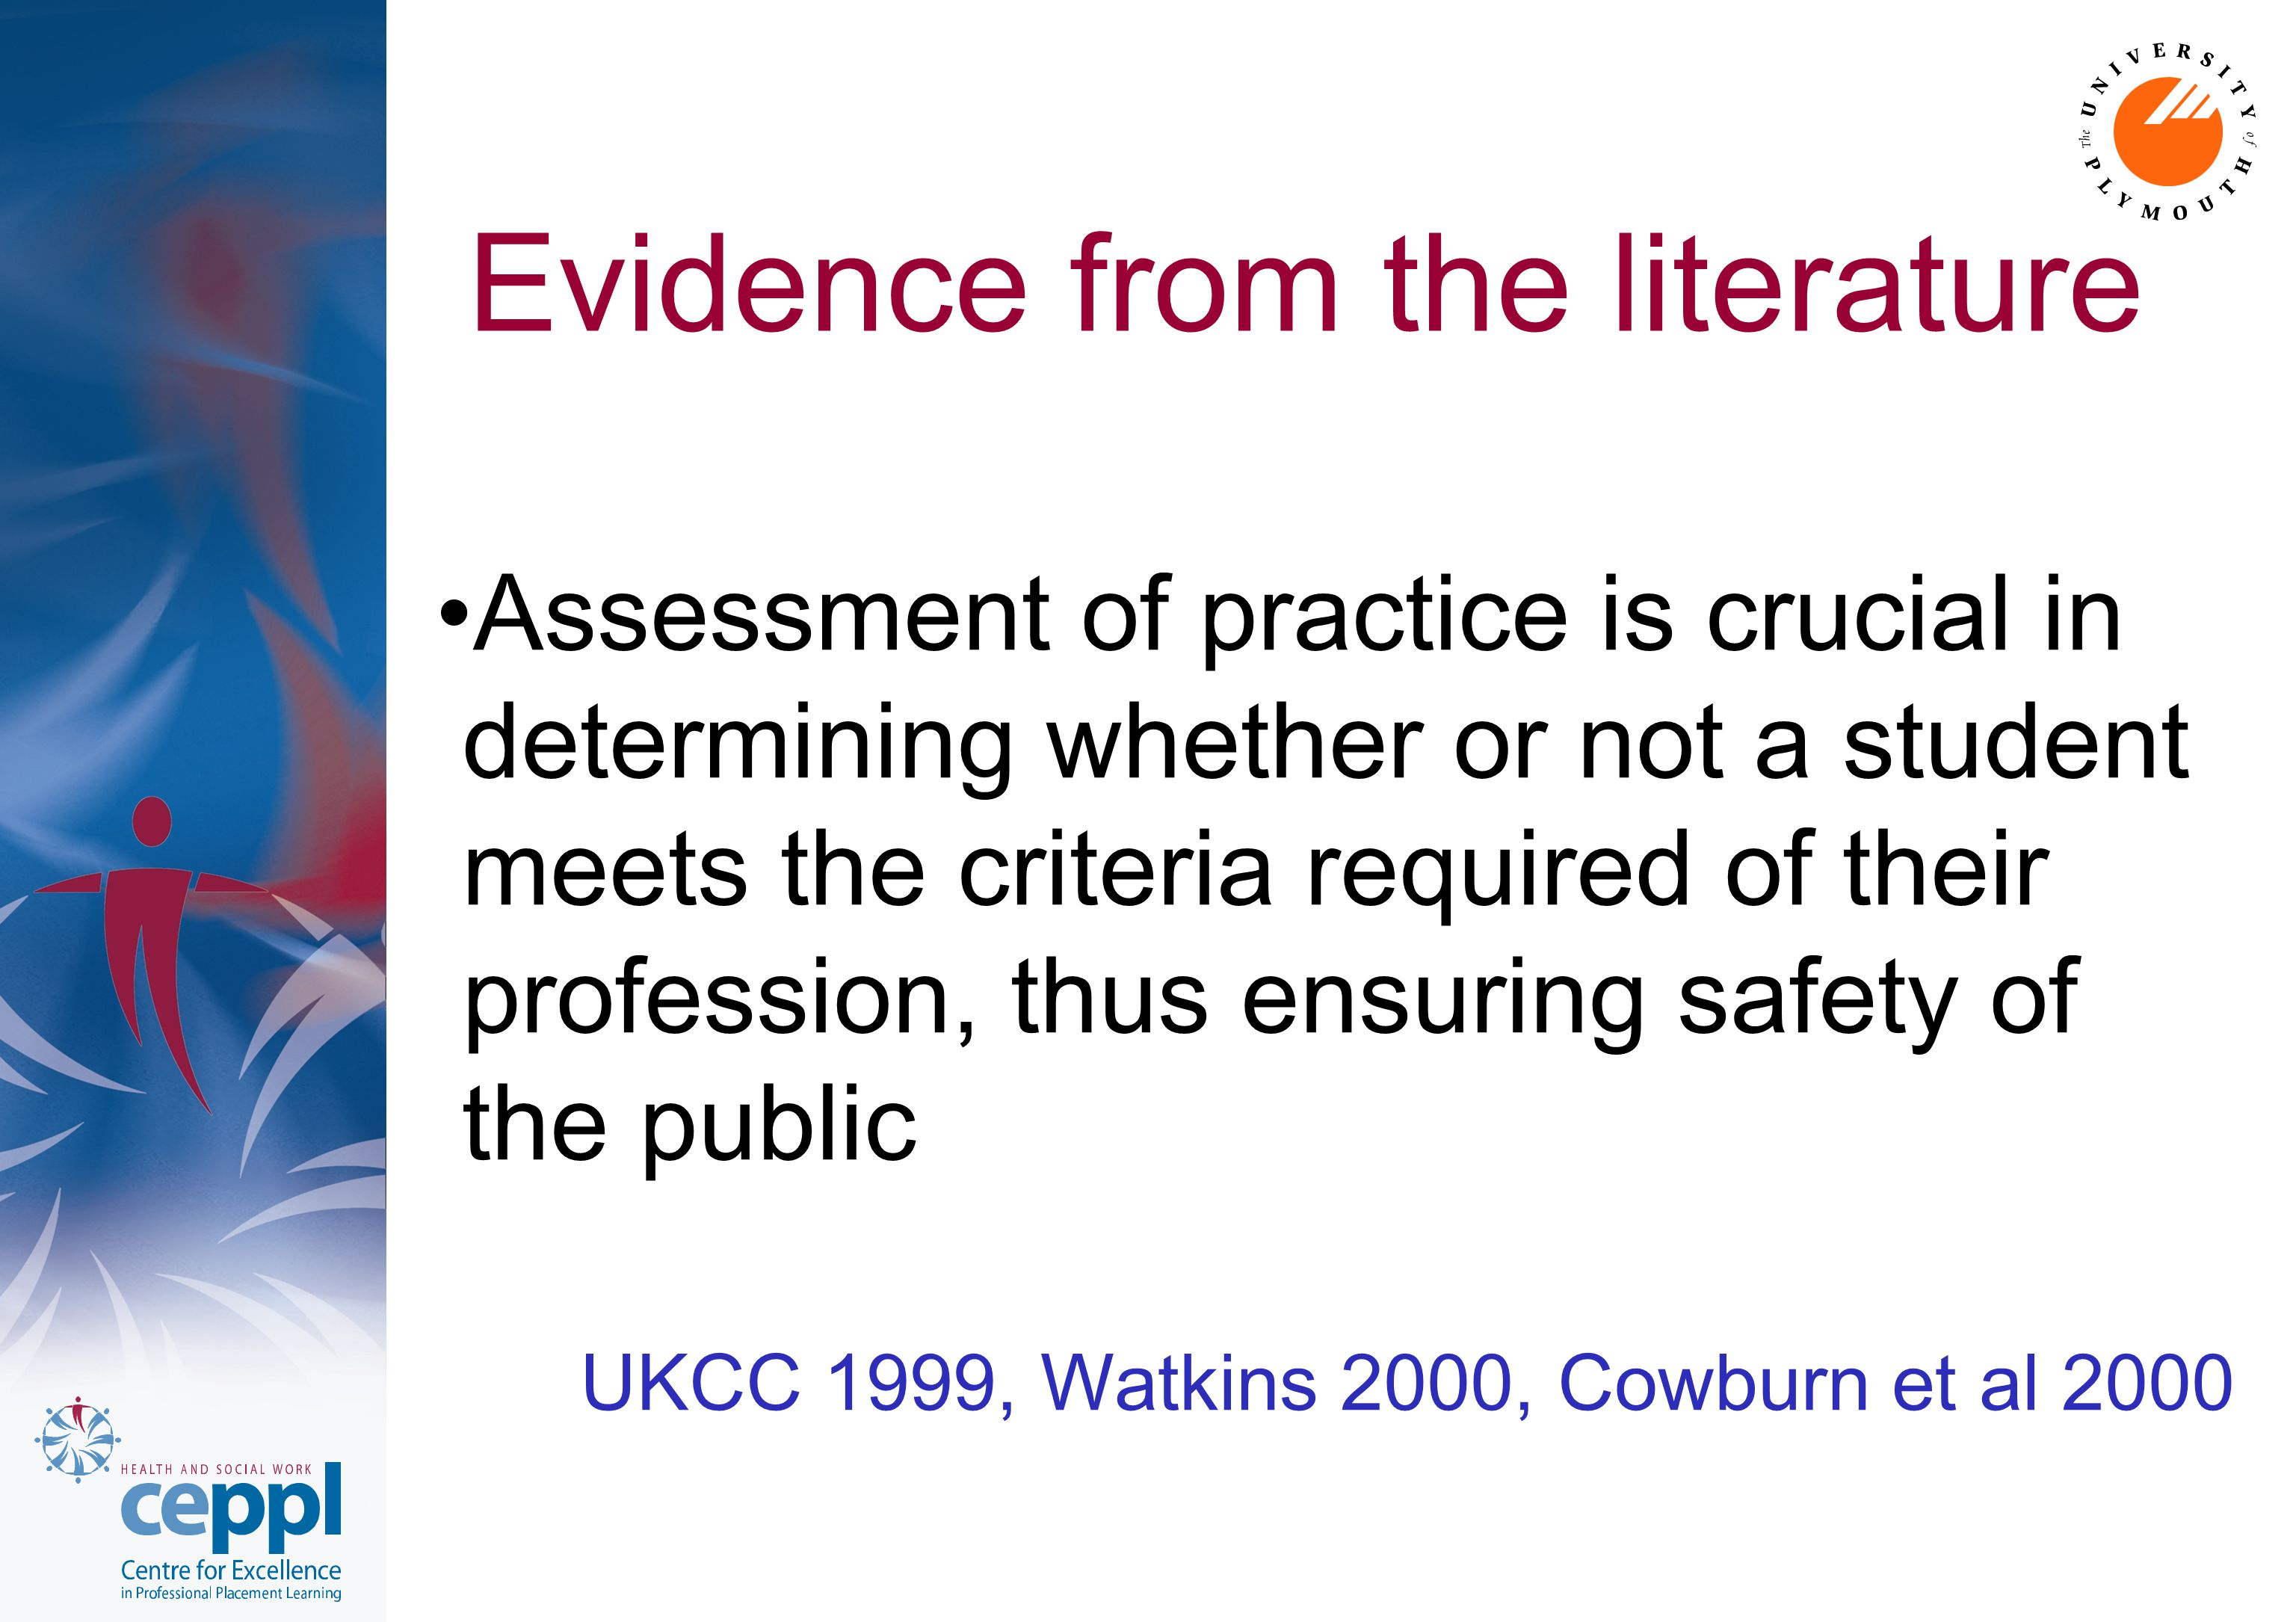 Defining competence has long been a challenge Cowan et al 2005 Efforts to 'measure' competence and professional abilities have resulted in a wide variety of methods of assessment Baume and Yorke 2002, McMullan et al 2003 The student may also be required to fulfil set criteria or outcomes and practice may be graded Caraccio and Englander 2004, Slater and Boulet 2001